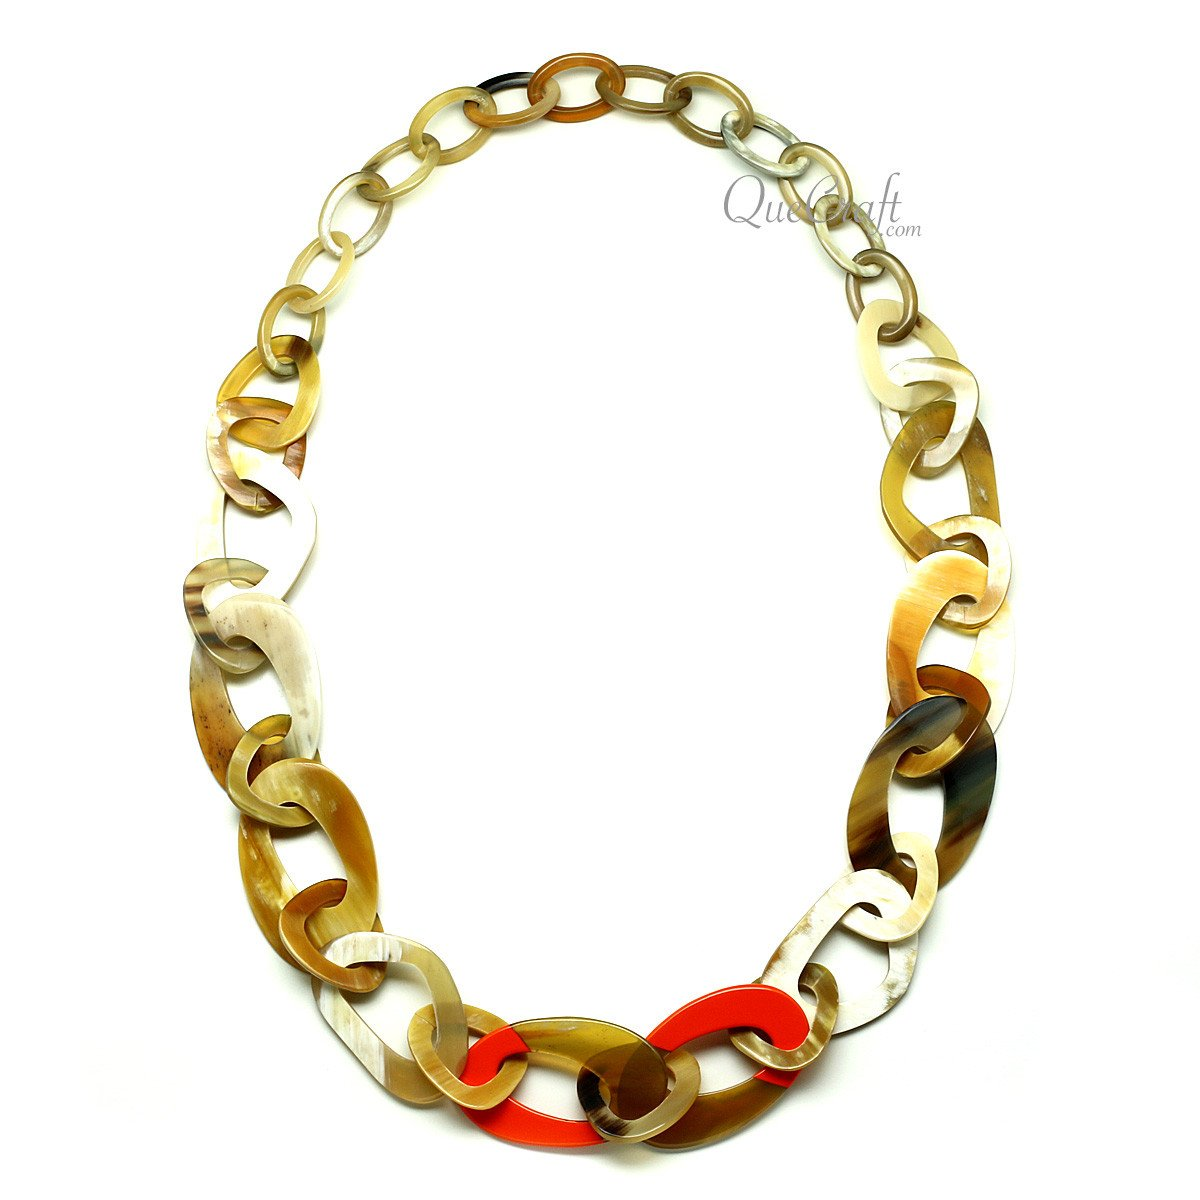 Horn & Lacquer Chain Necklace #10273 - HORN.JEWELRY by QueCraft